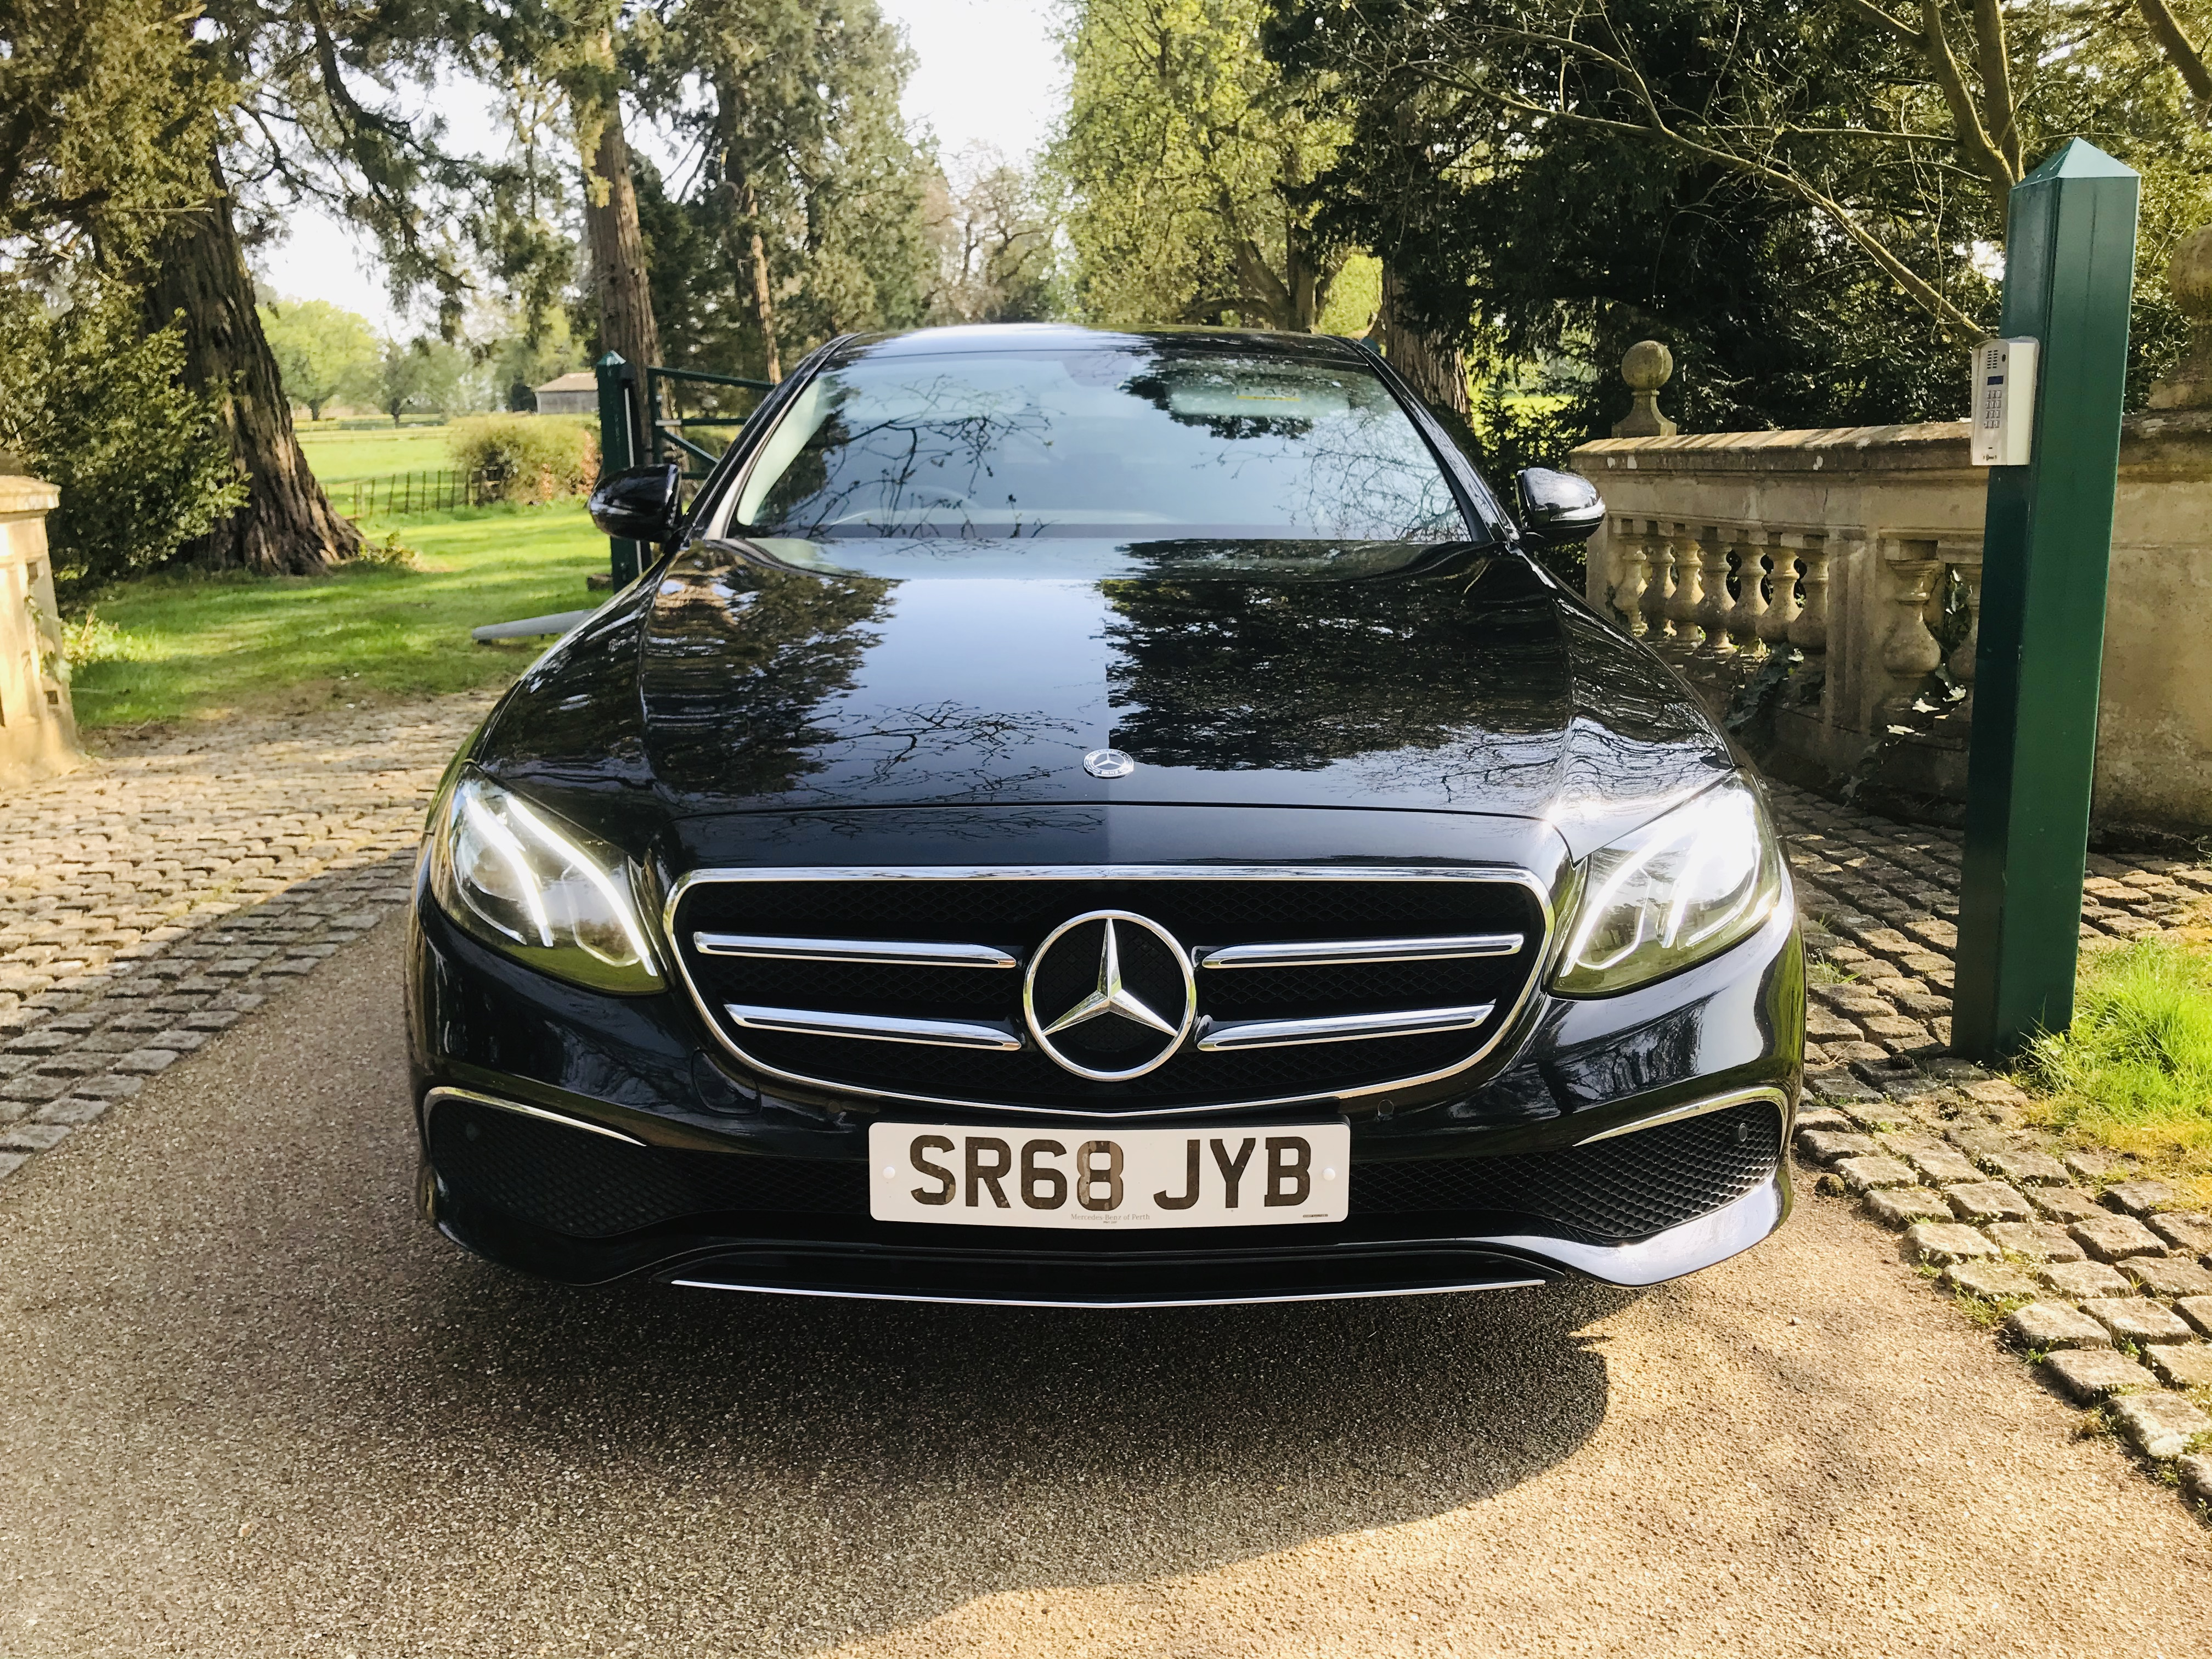 """On Sale MERCEDES E220d """"SPECIAL EQUIPMENT"""" 9G TRONIC (2019 MODEL) 1 OWNER - SAT NAV - LEATHER - WOW! - Image 4 of 26"""